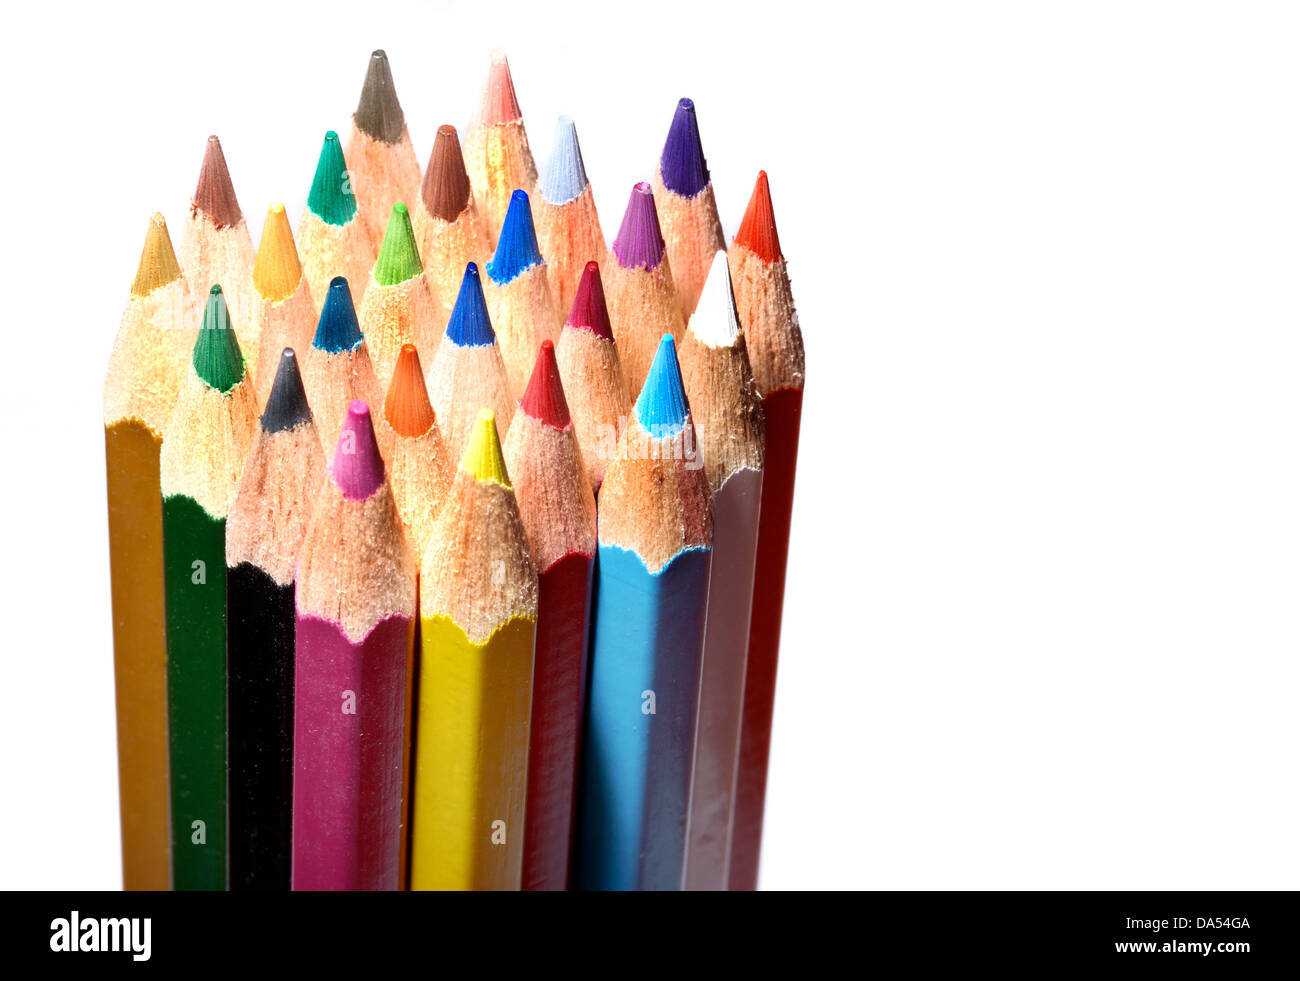 set of colored pencils - Stock Image